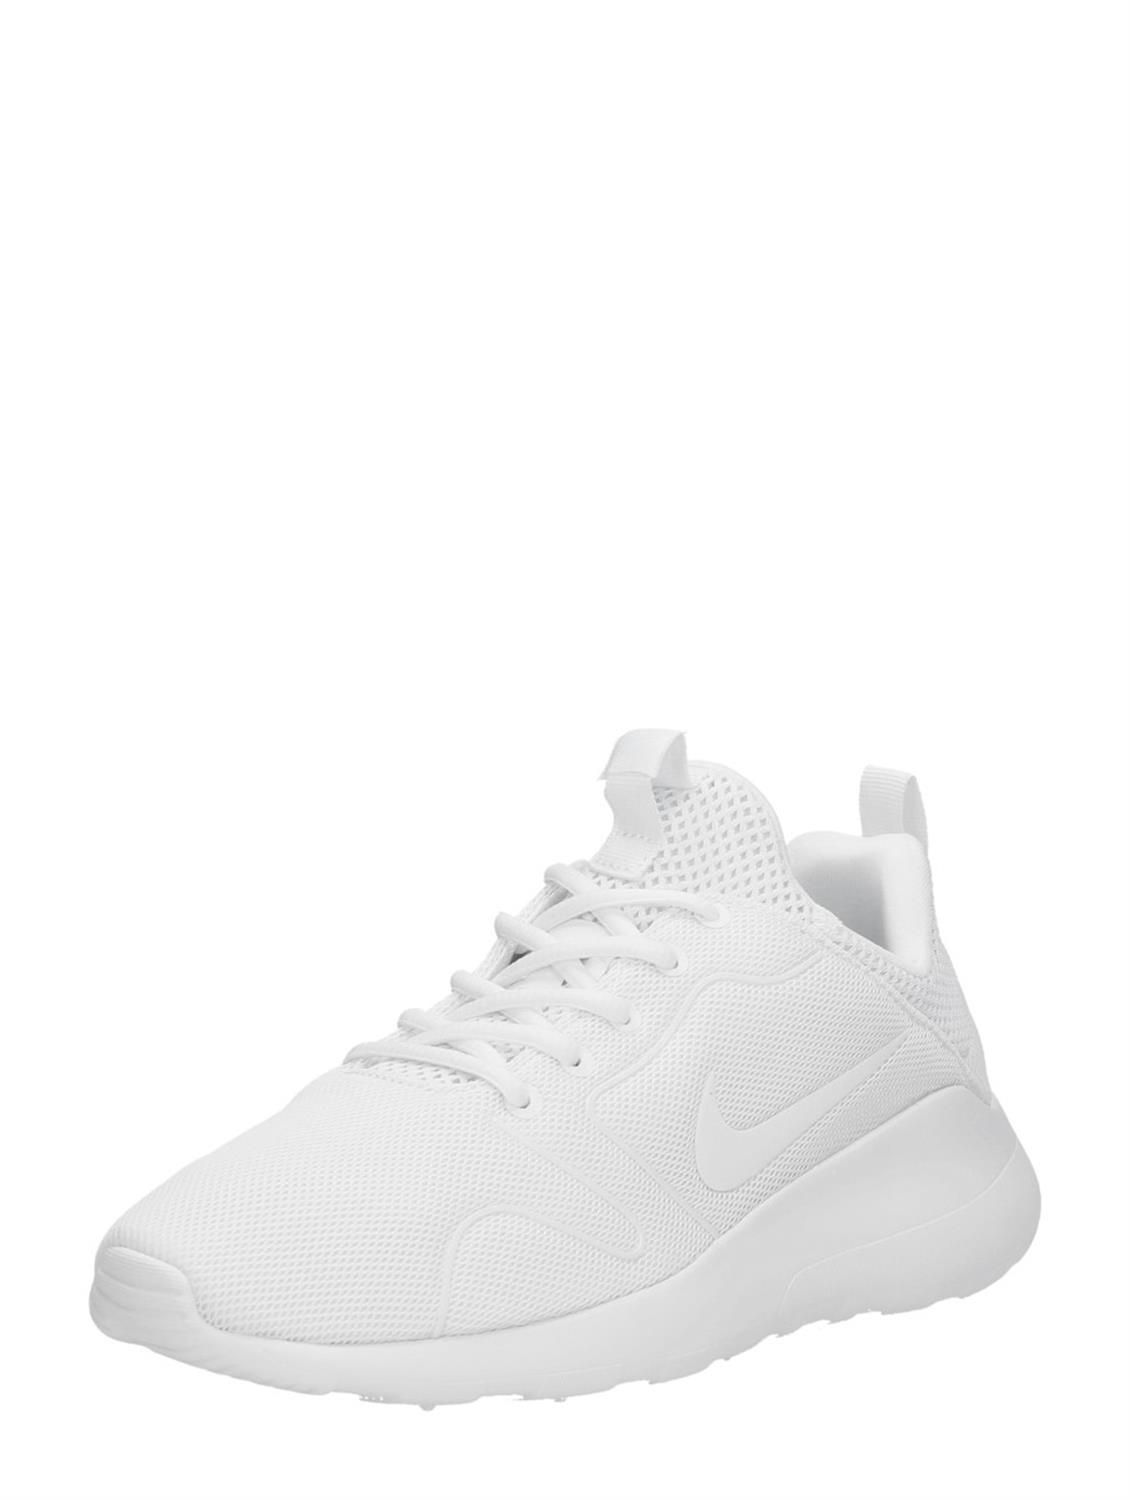 new arrival 12ba6 dac9c Nike Kaishi 2.0 heren sneakers -wit